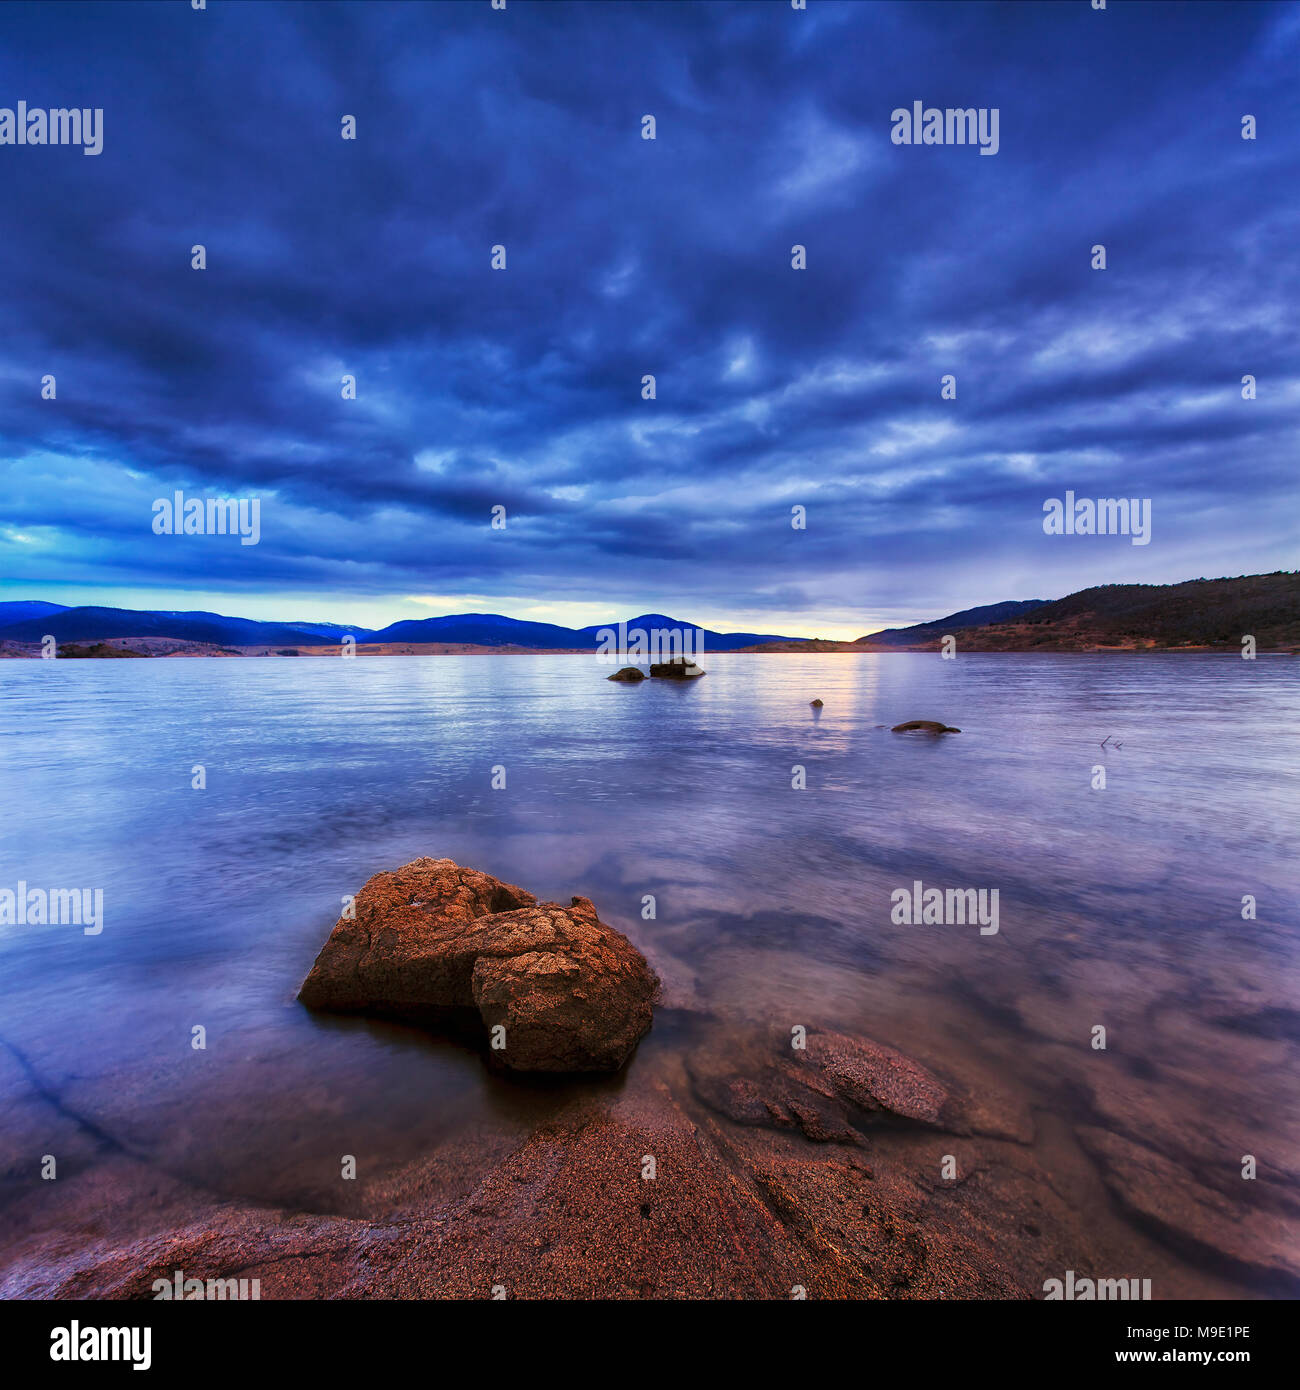 Cloudy sunrise over Jindabyne lake in NSW snowy mountains region of Australia. Clear water of mountain lake shows rocky botton and reflects sunlight. - Stock Image